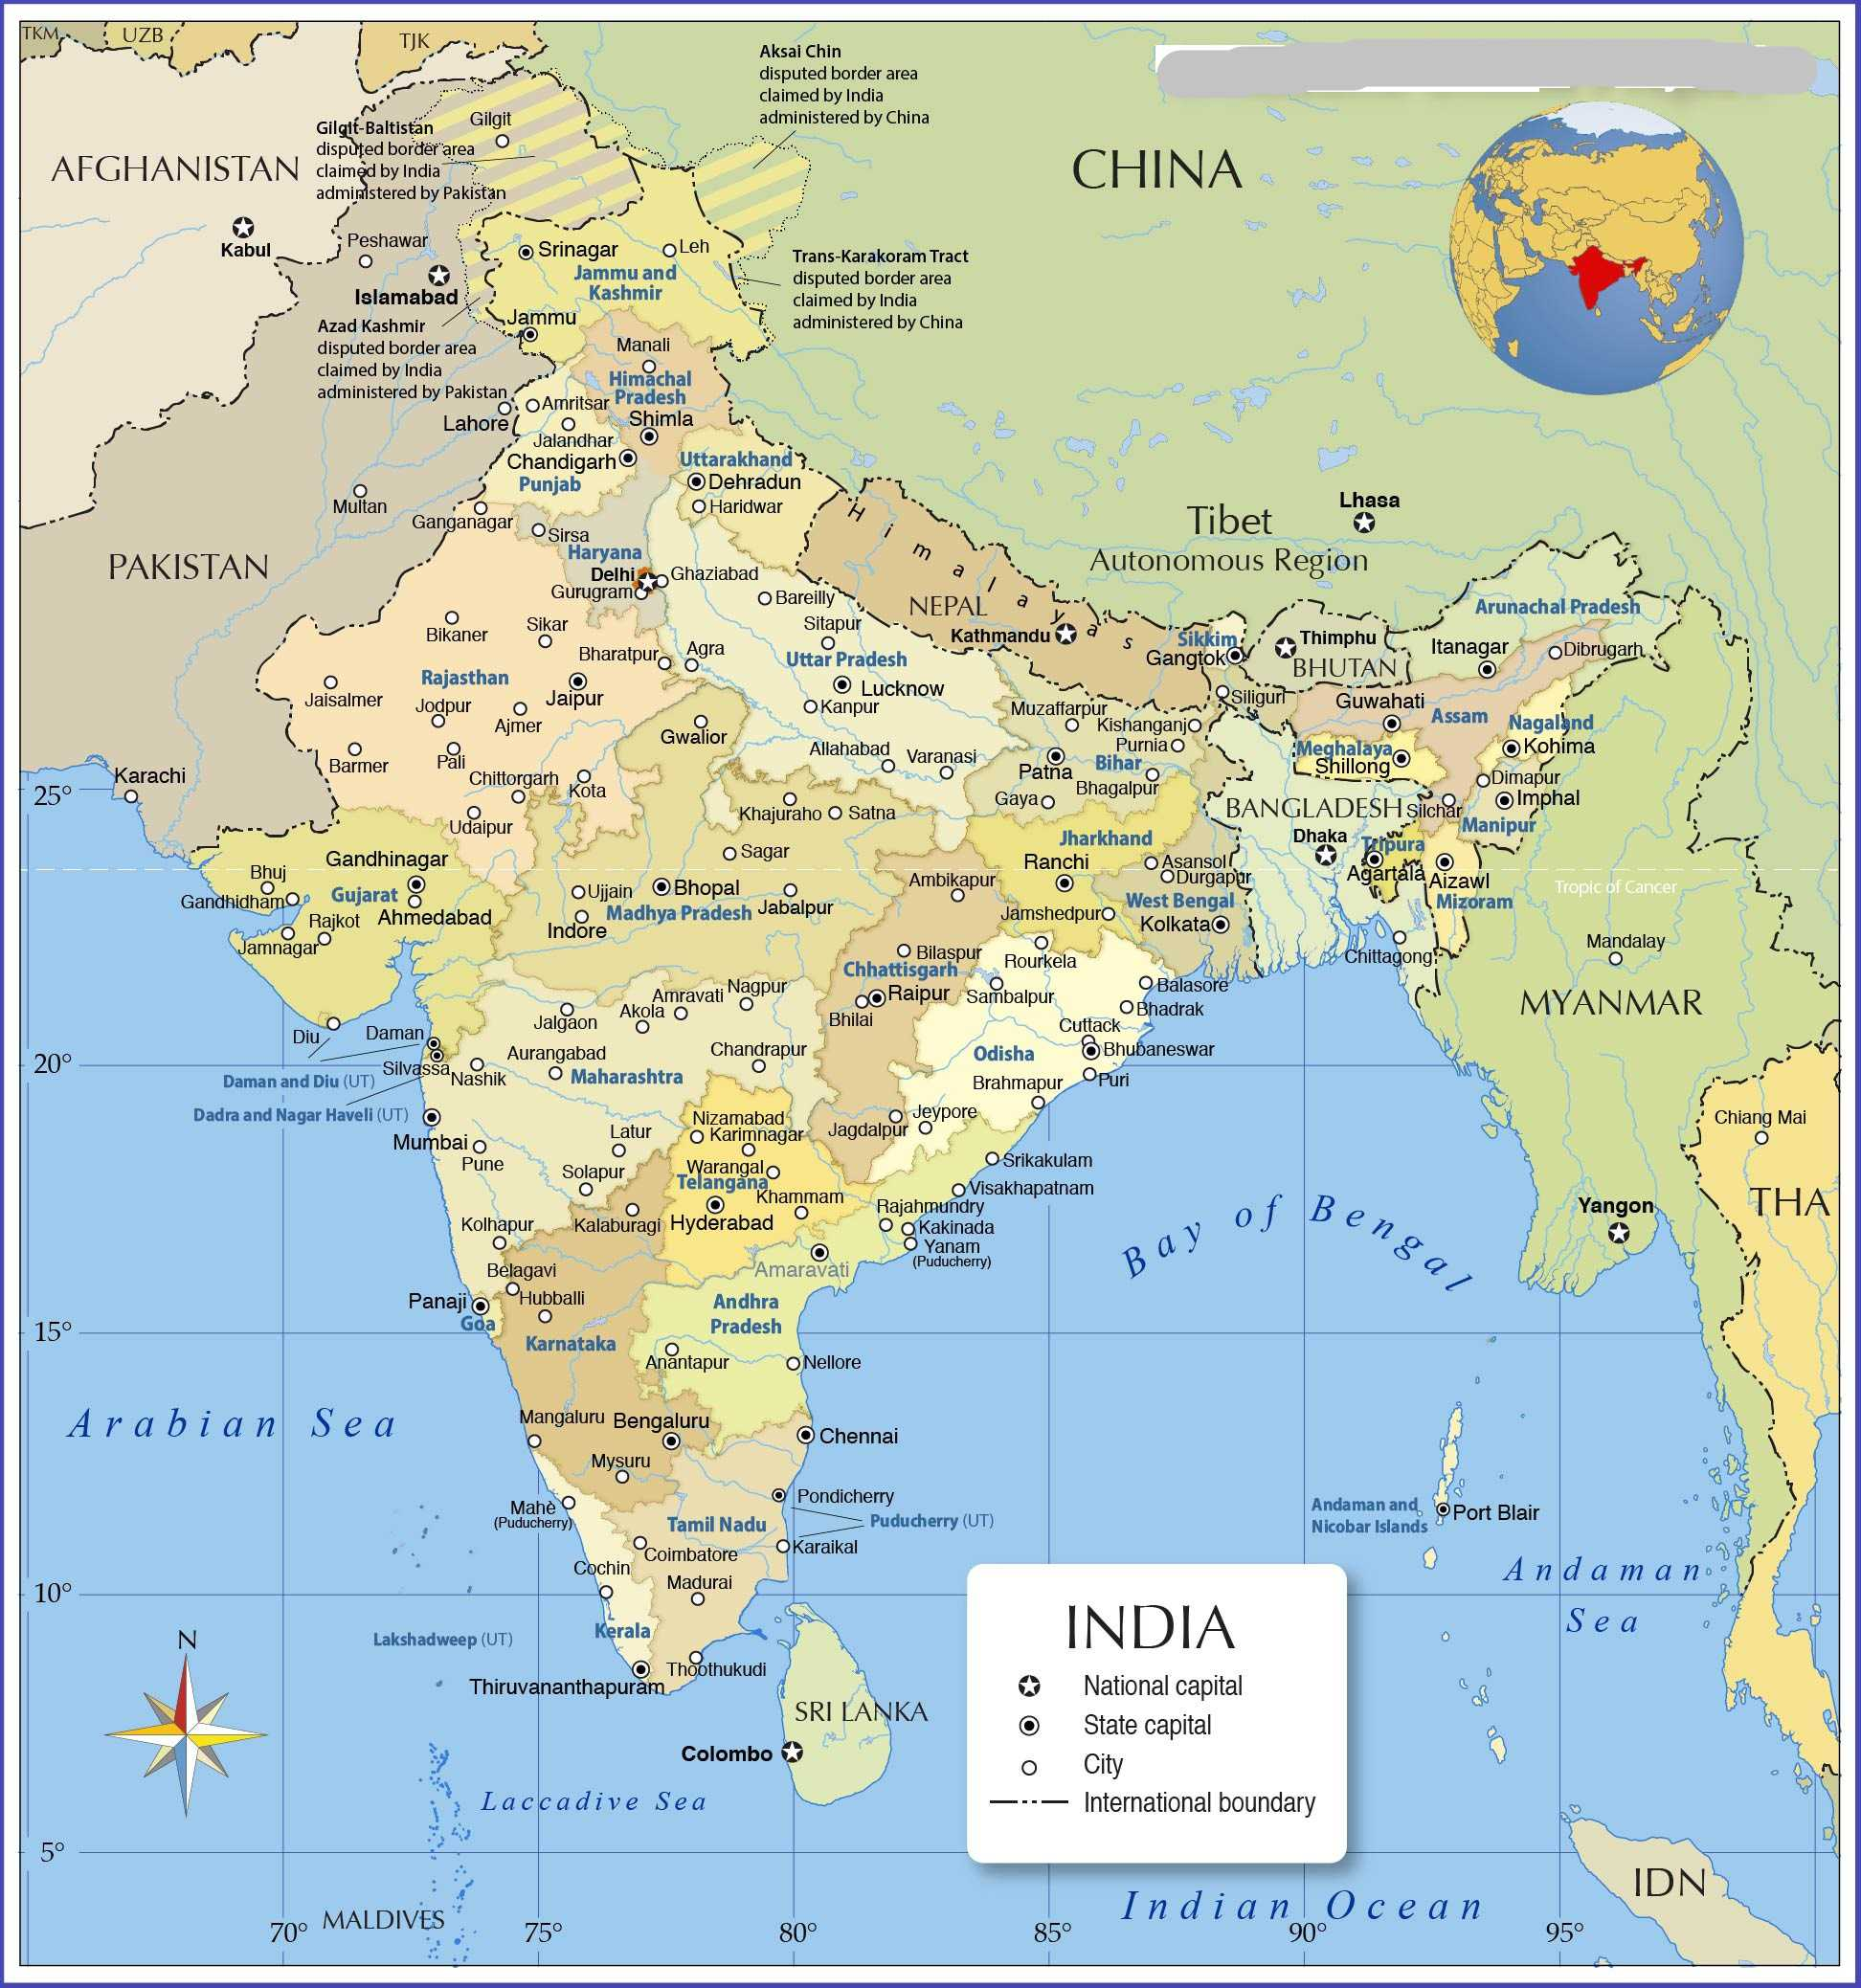 Political Map of India | Indian Political Map